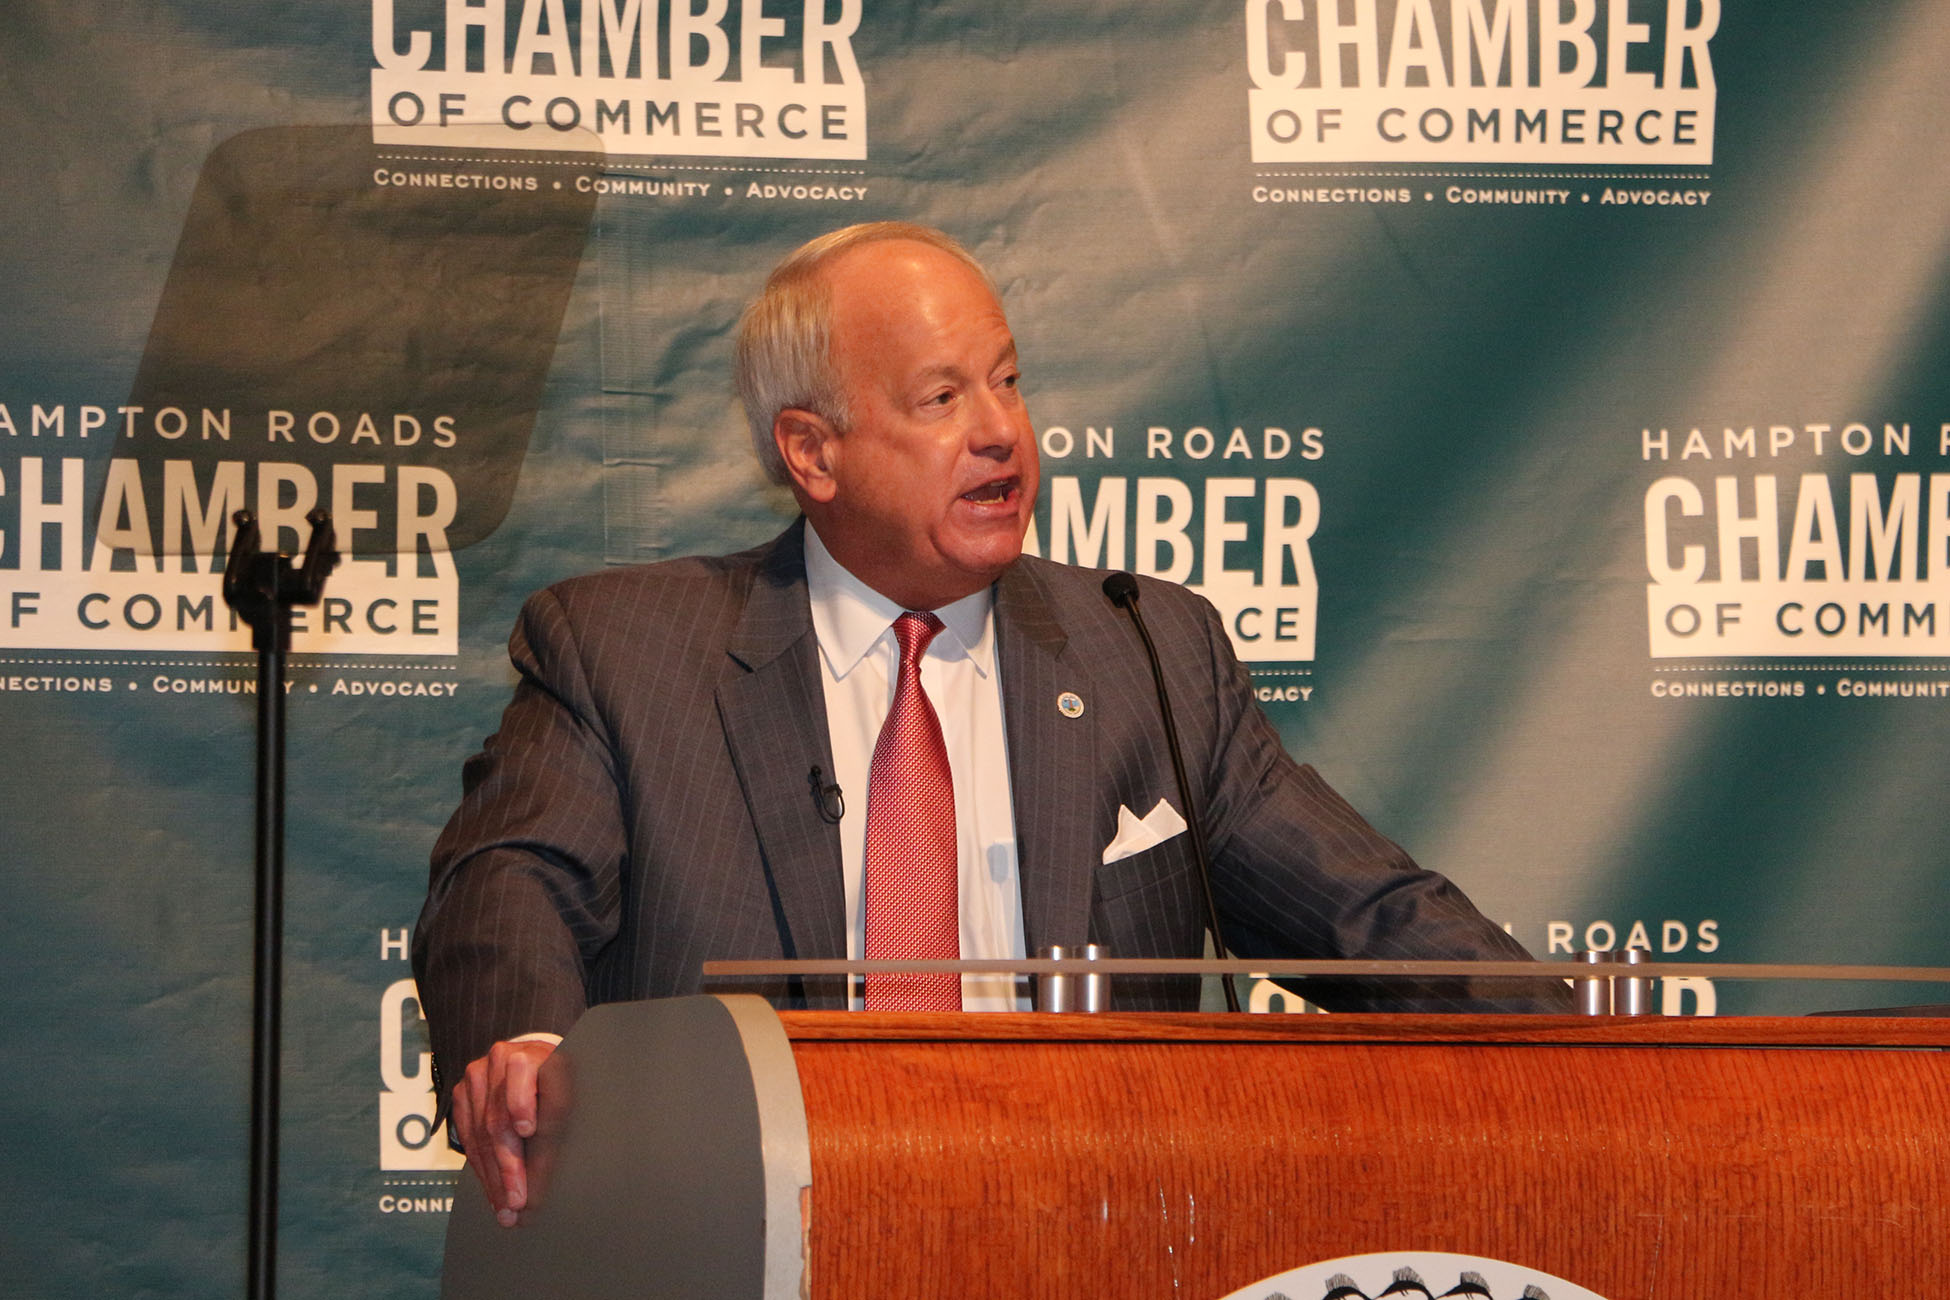 The Hampton Roads Chamber of Commerce State of the City Series kicked off on February 11th with the Virginia Beach State of the City